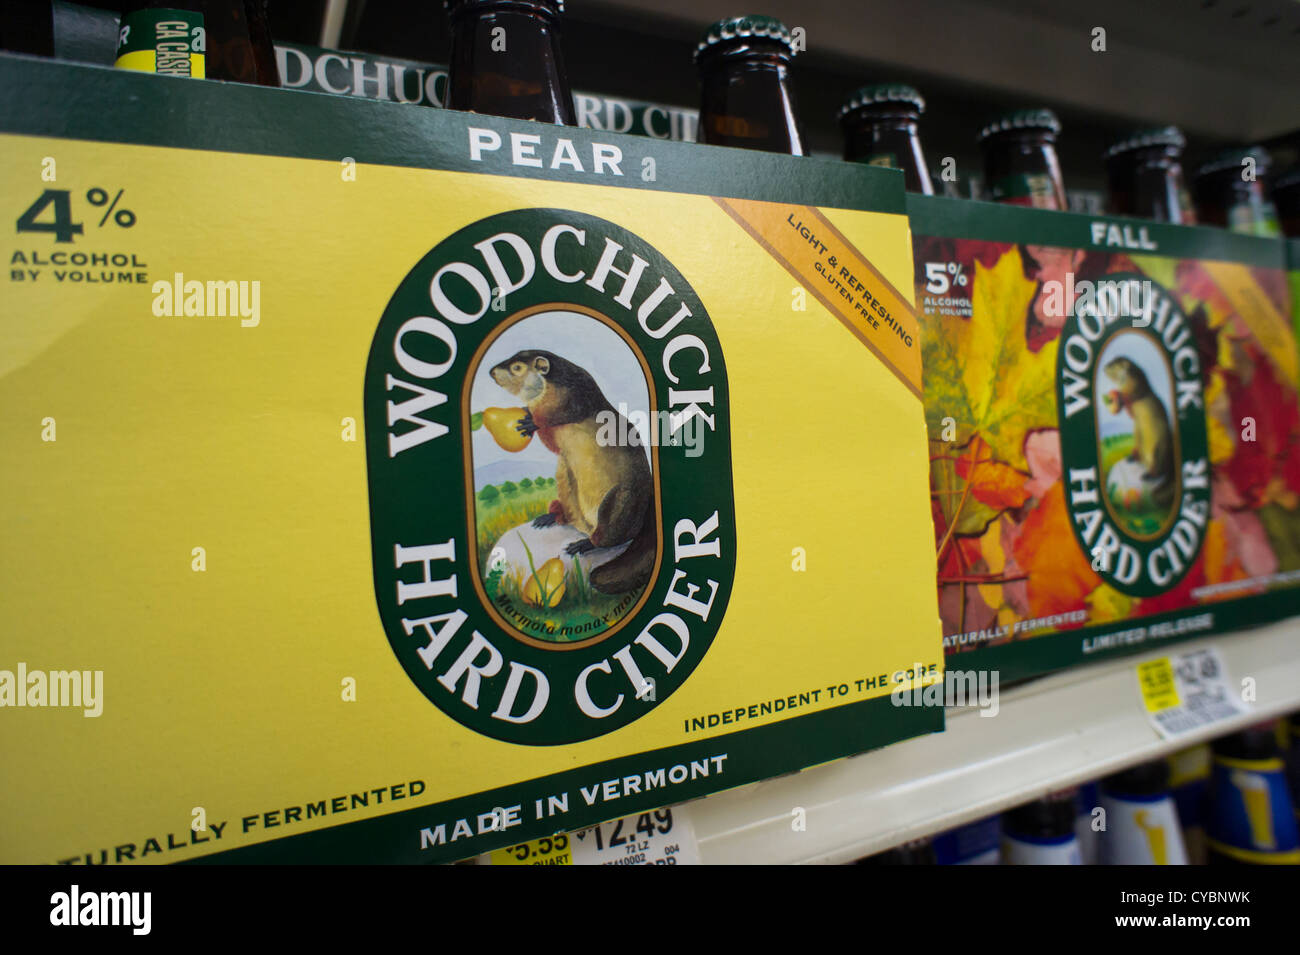 Six-packs of Woodchuck hard Cider are seen on a grocery store shelf in New York - Stock Image